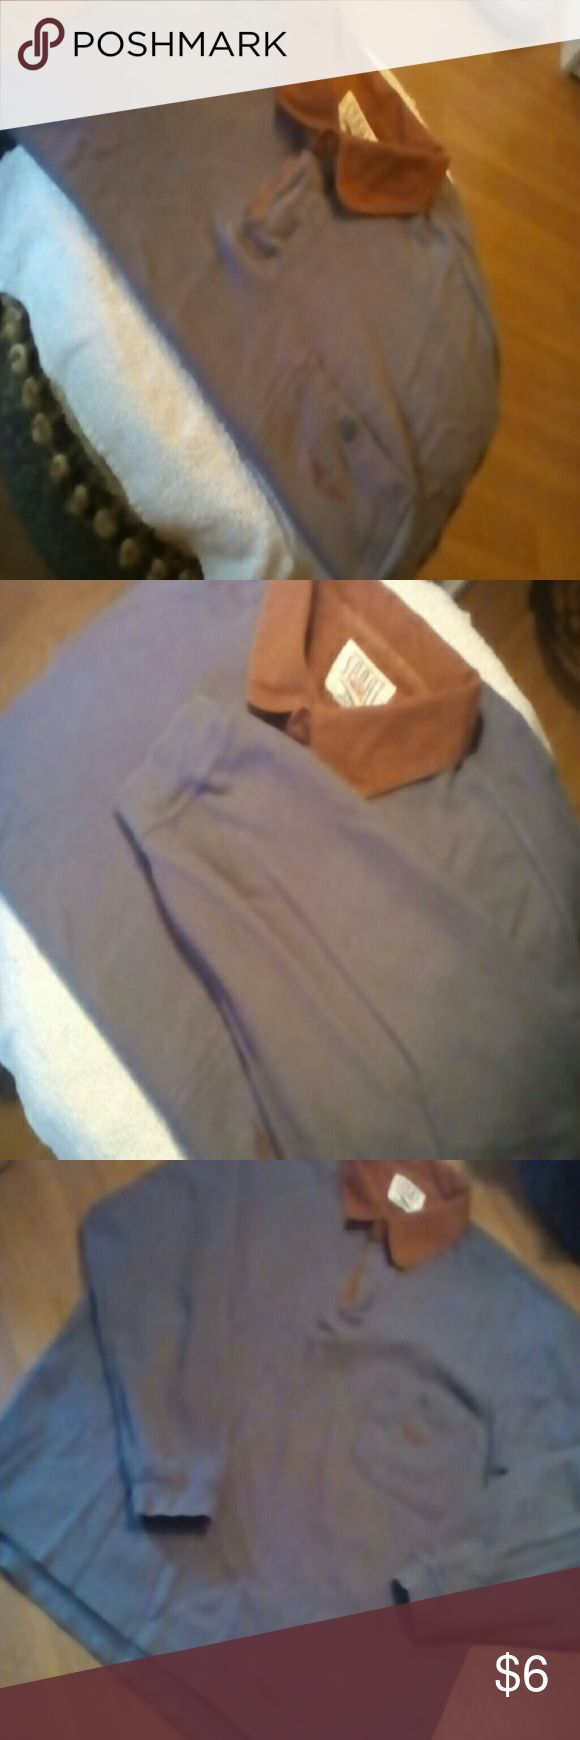 Dockers Sport Mens Shirt Heavy duty shirt, sweatshirt weight, super comfy.  Great condition! Thanks for stopping by! Dockers Shirts Sweatshirts & Hoodies